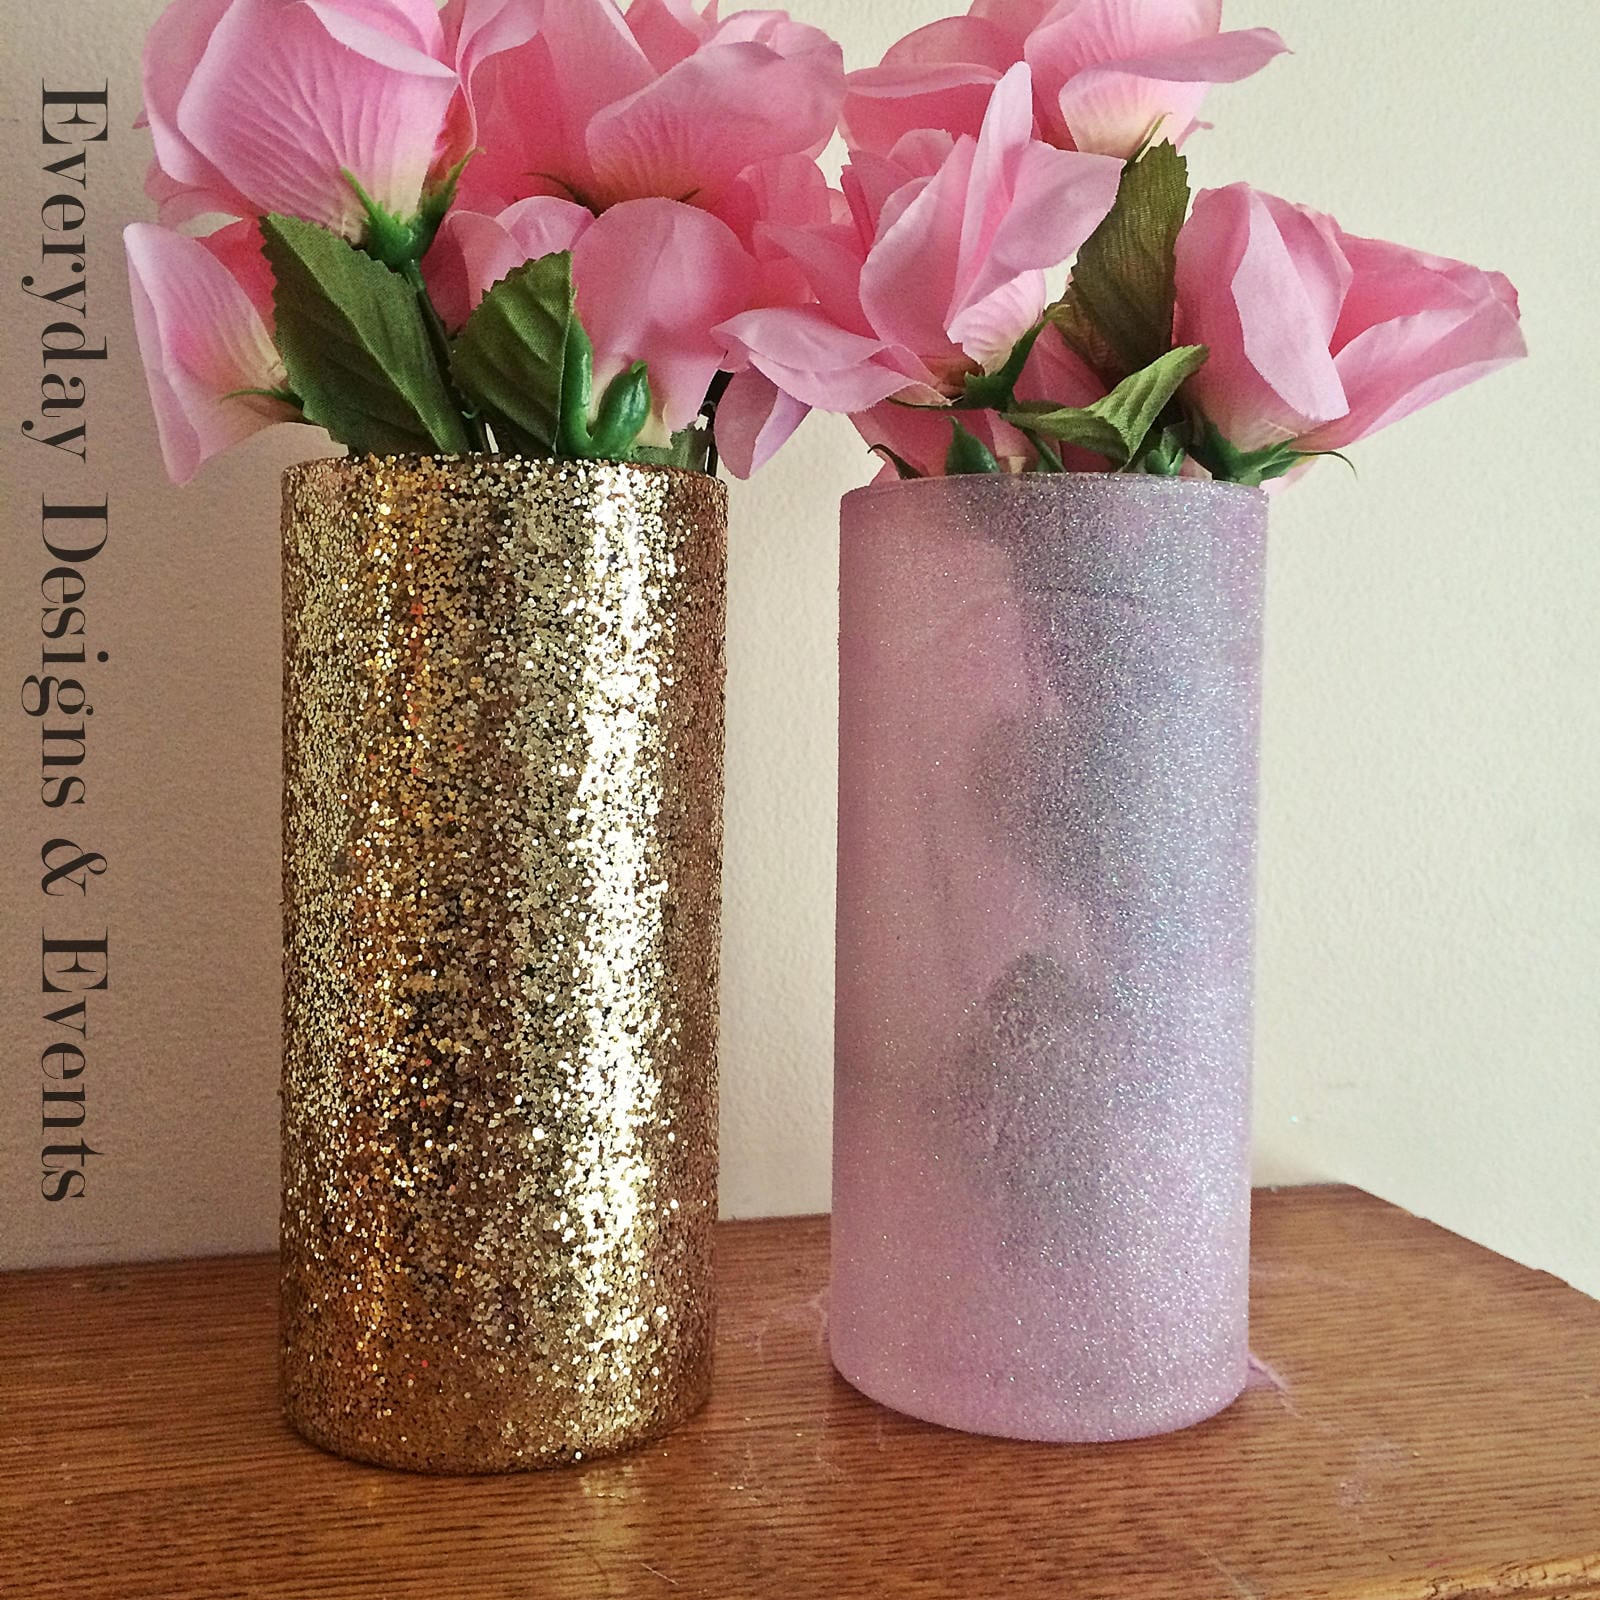 50 new centerpieces vases for sale home idea 2 gold and pink vases centerpieces for wedding baby shower reviewsmspy